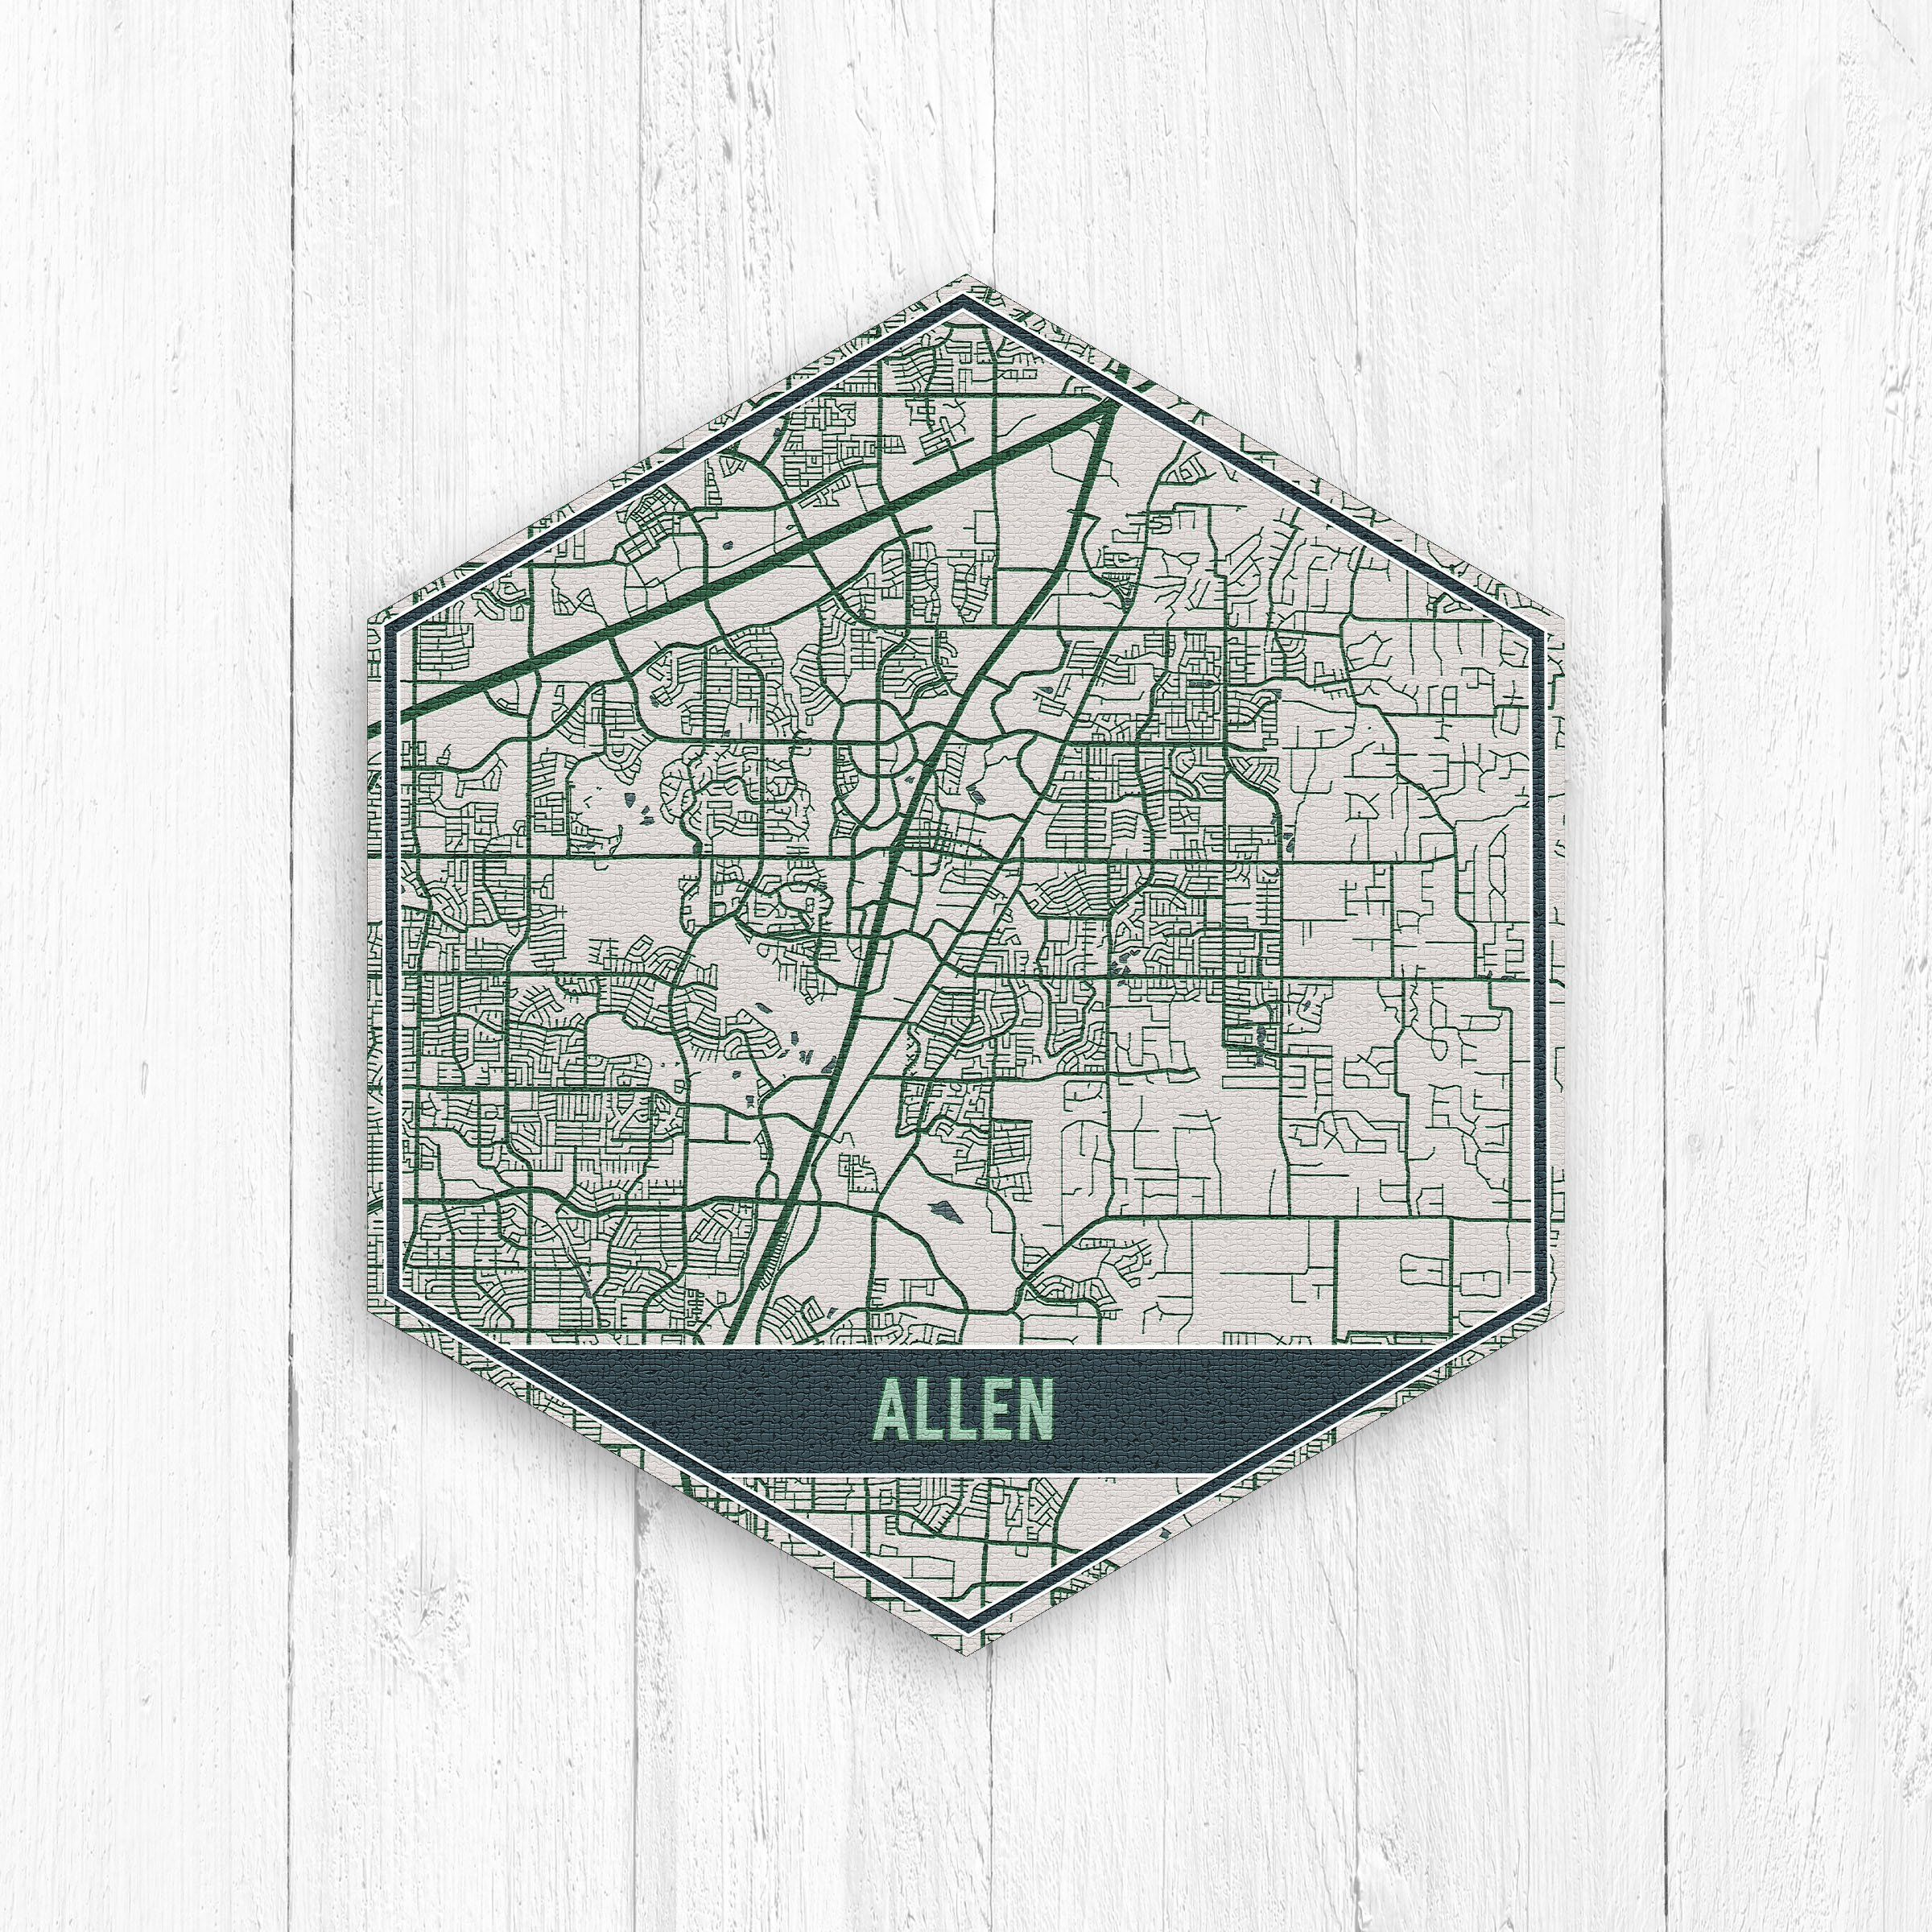 Allen Texas Street Map, Hexagon Map, Hexagon Canvas, Travel ... on map of allen ok, map of frisco, map of east texas tyler, map of carlsbad ca, map of allen outlet, map of buckhead atlanta ga, map of allen texas area, map of allen texas zip code, map of fayetteville ar, map texas tx, map of greeley co, map of plano, map of bridgewater nj, map of broken arrow ok, map of las cruces nm, map of leawood ks, map of sterling va, map of allen parkway houston,